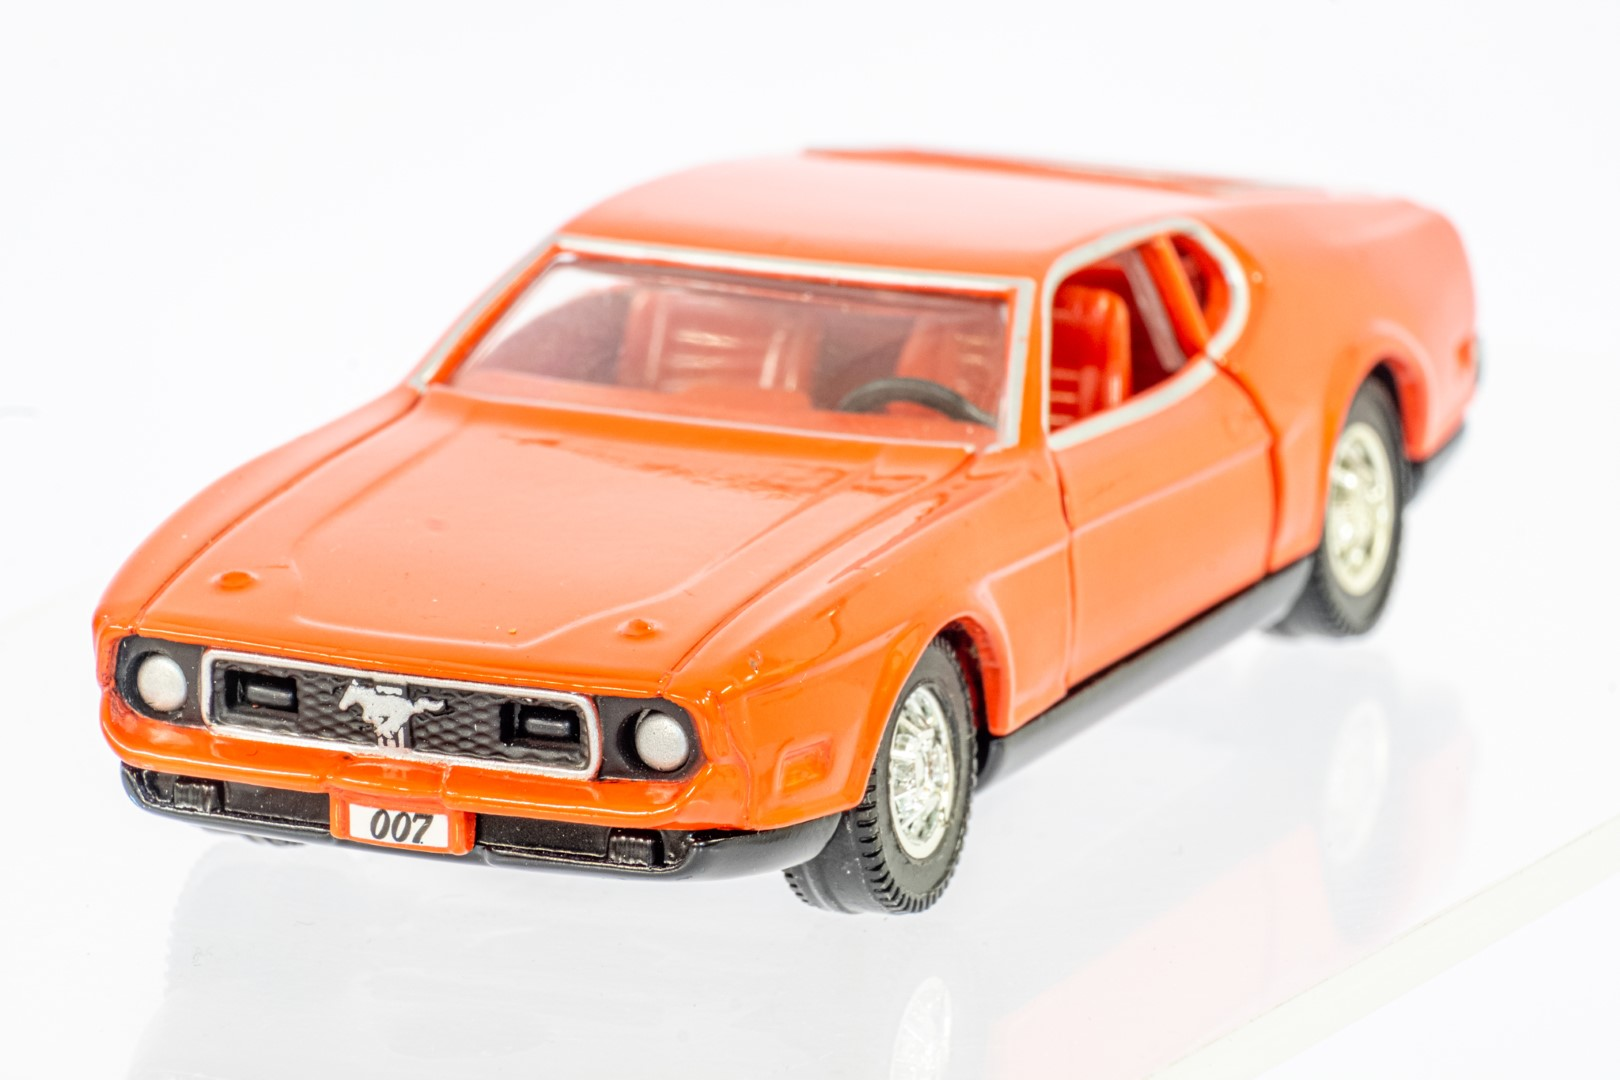 4 x Assorted Loose Car Models - Image 2 of 9